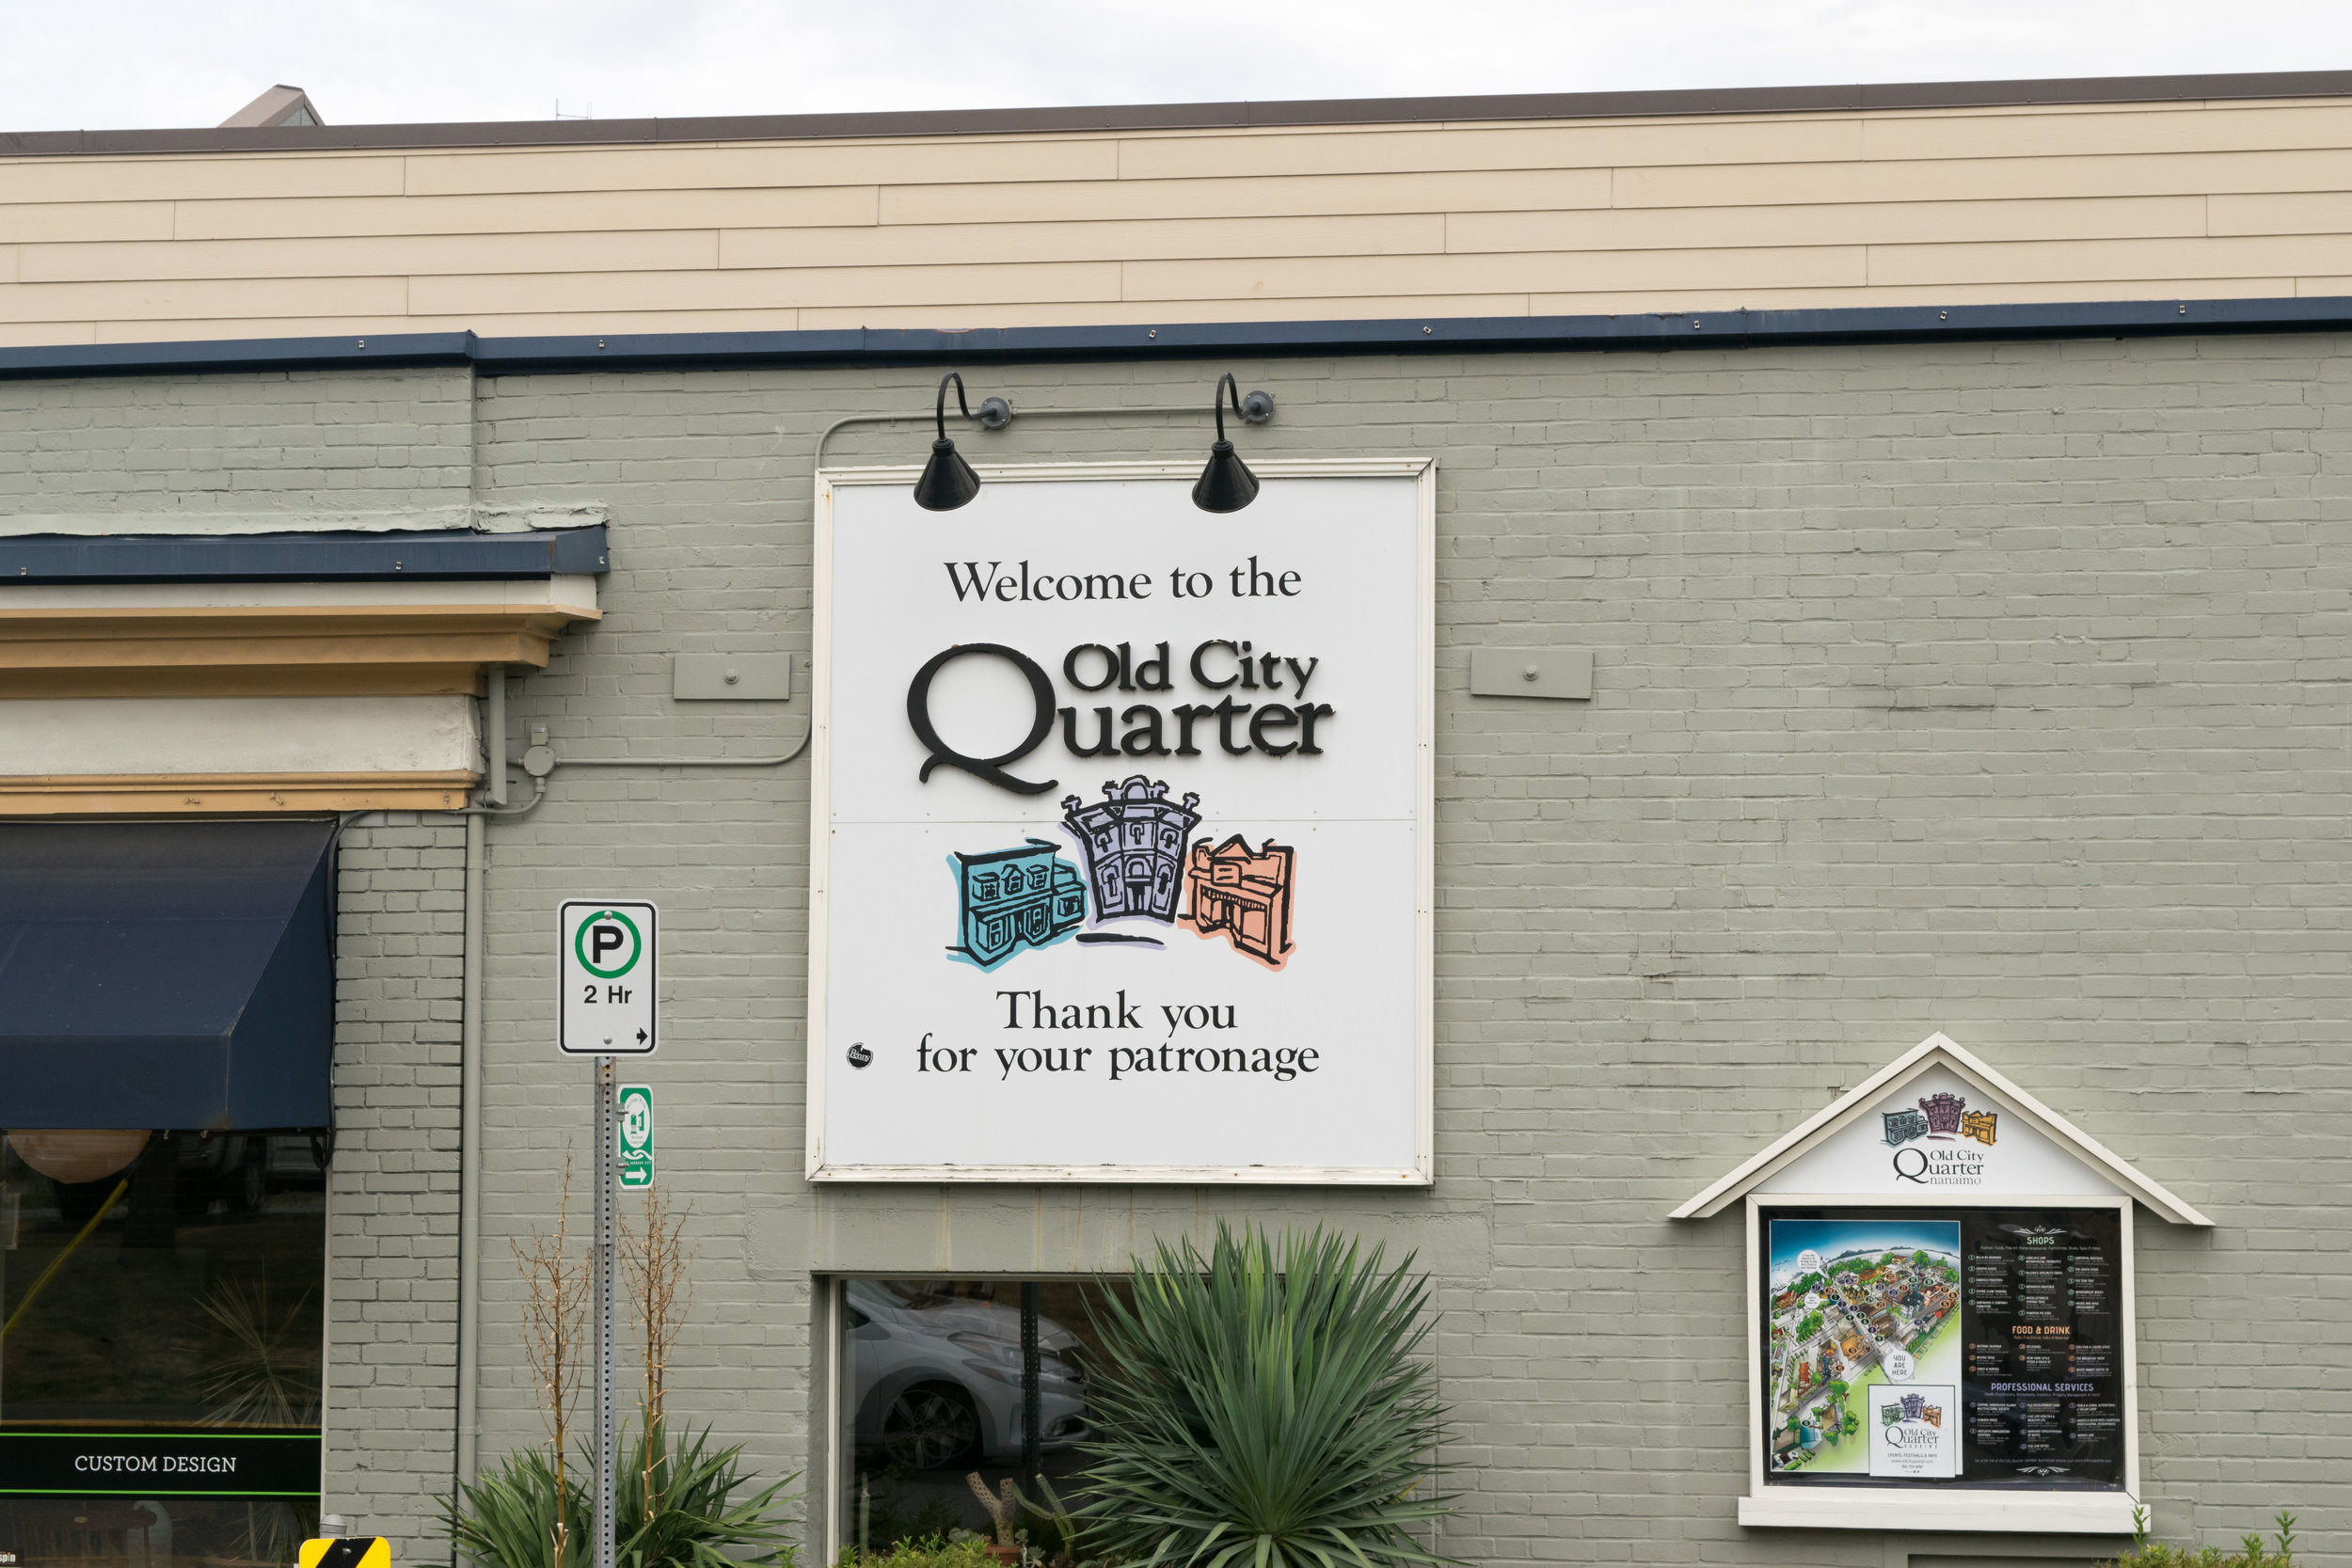 Welcome to the Old City Quarter sign, Nanaimo